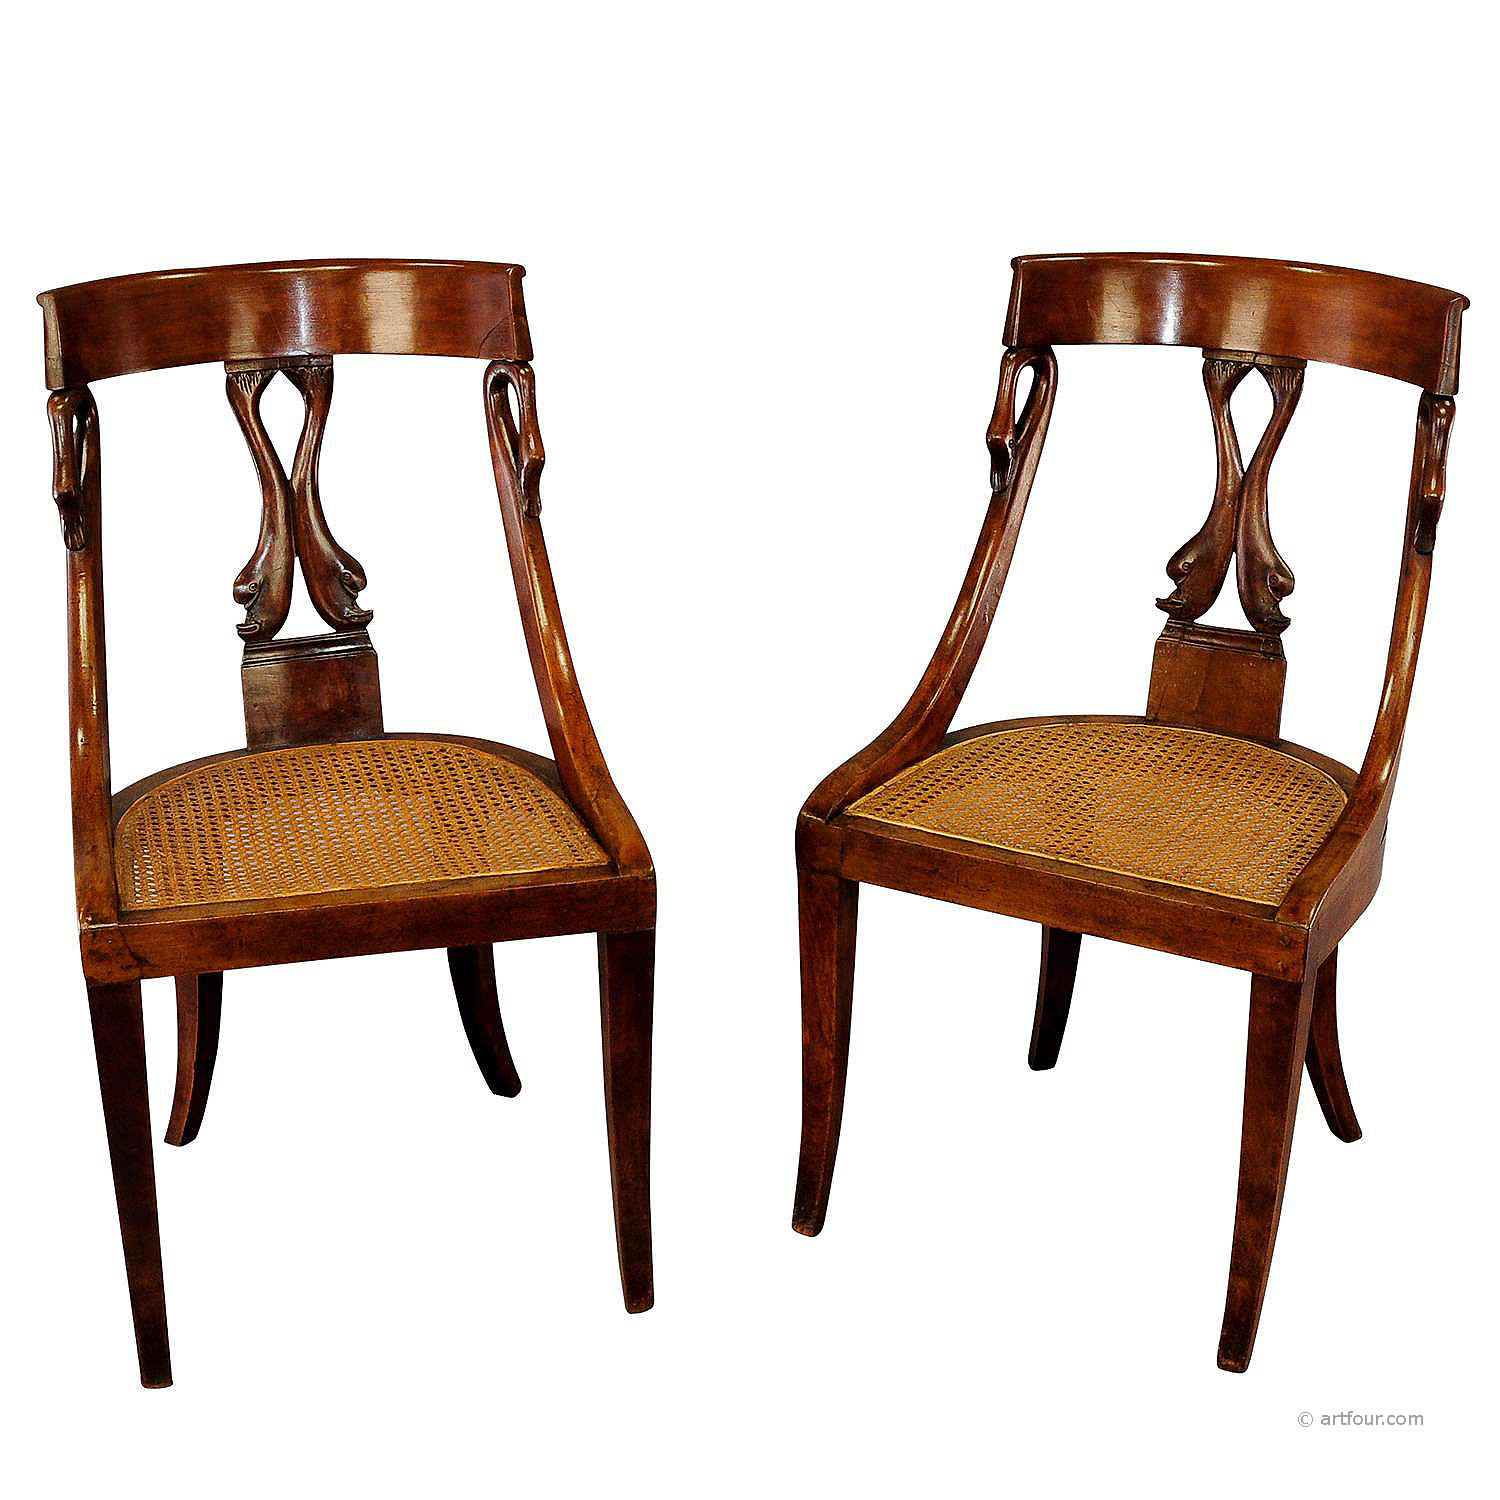 2 biedermeier wood chairs